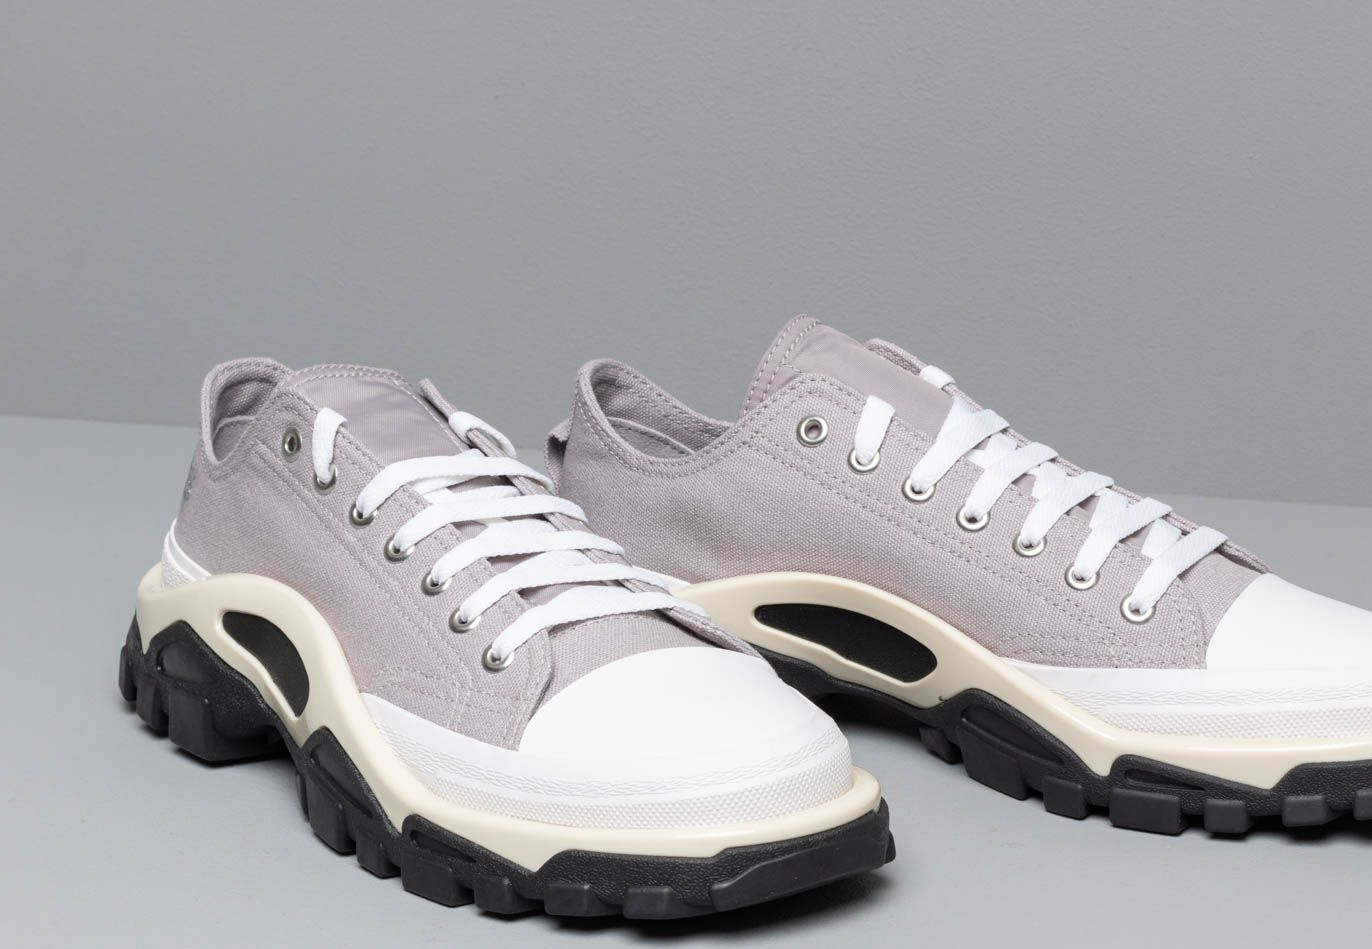 adidas x Raf Simons Detroit Runner Light Granite/ Silver Metallic/ Core White, Gray